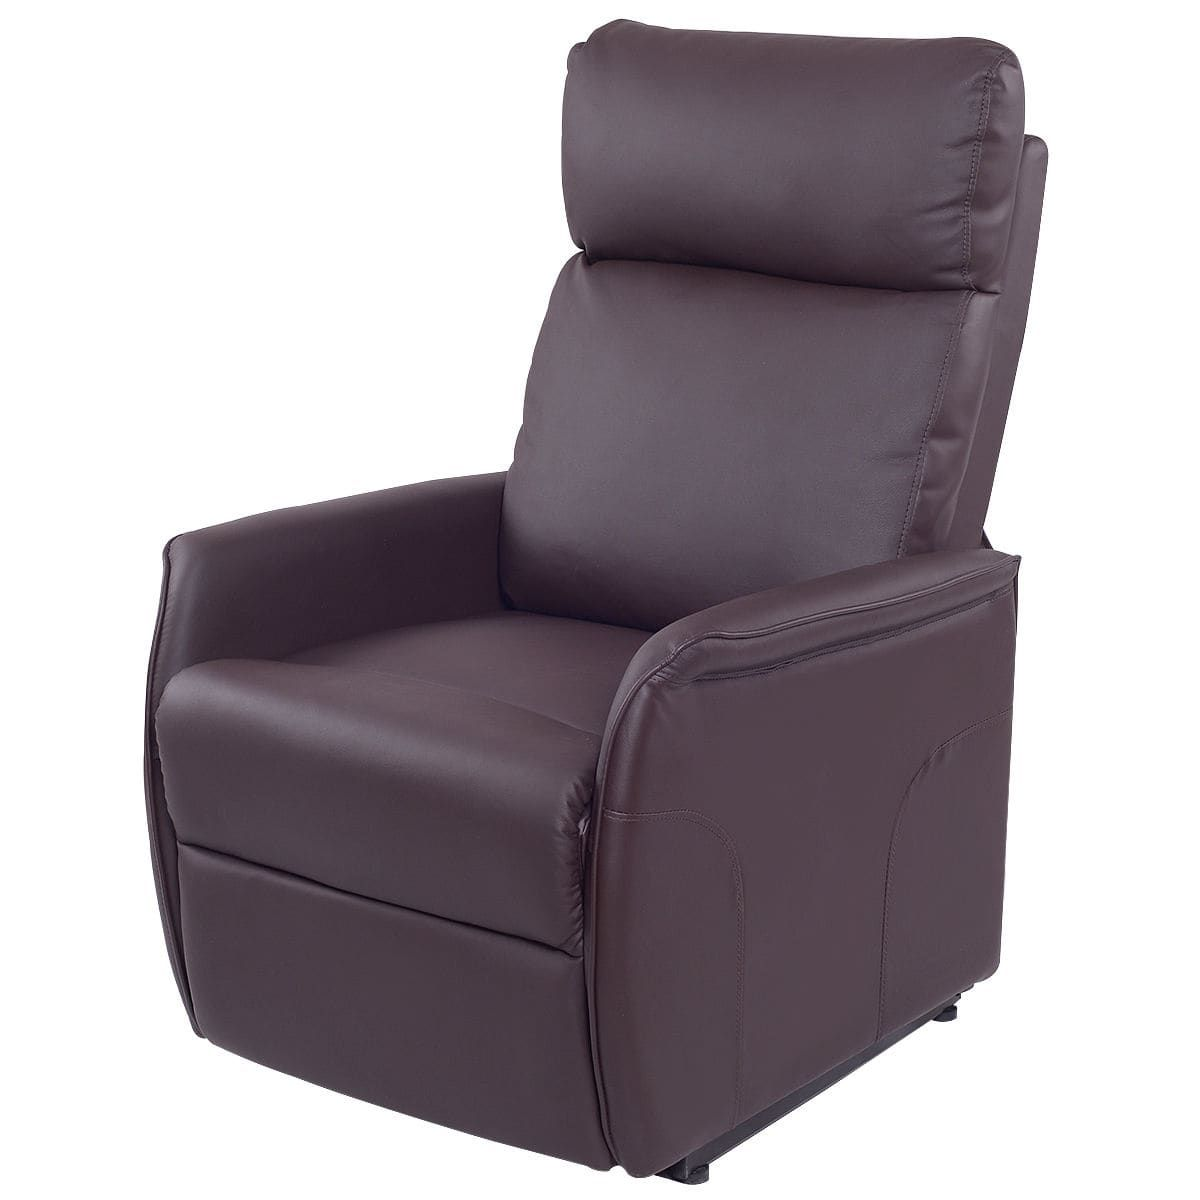 Costway pu electric lift chair power recliner reclining sofa lounge